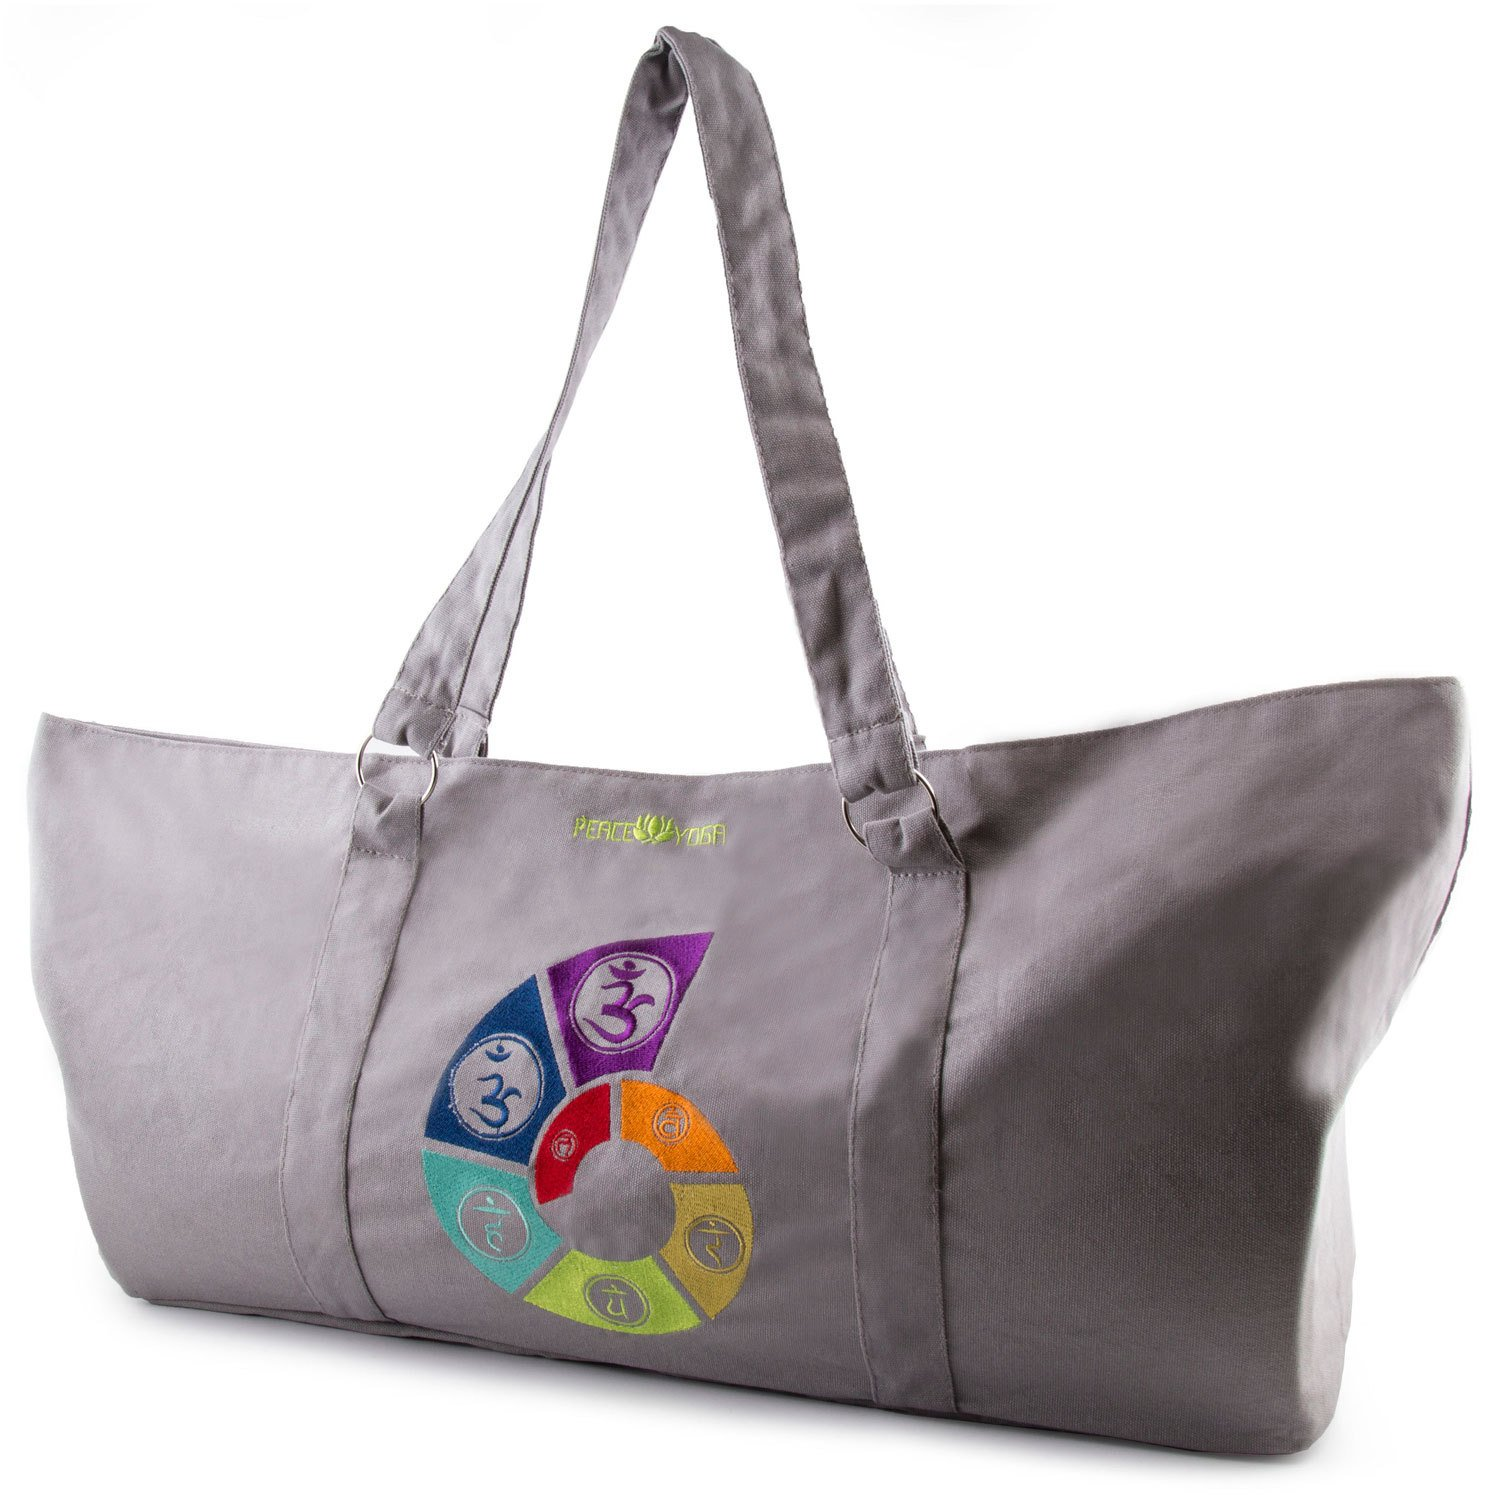 Yoga Mat Carrier Tote Bag With Adjustable Straps - Gray